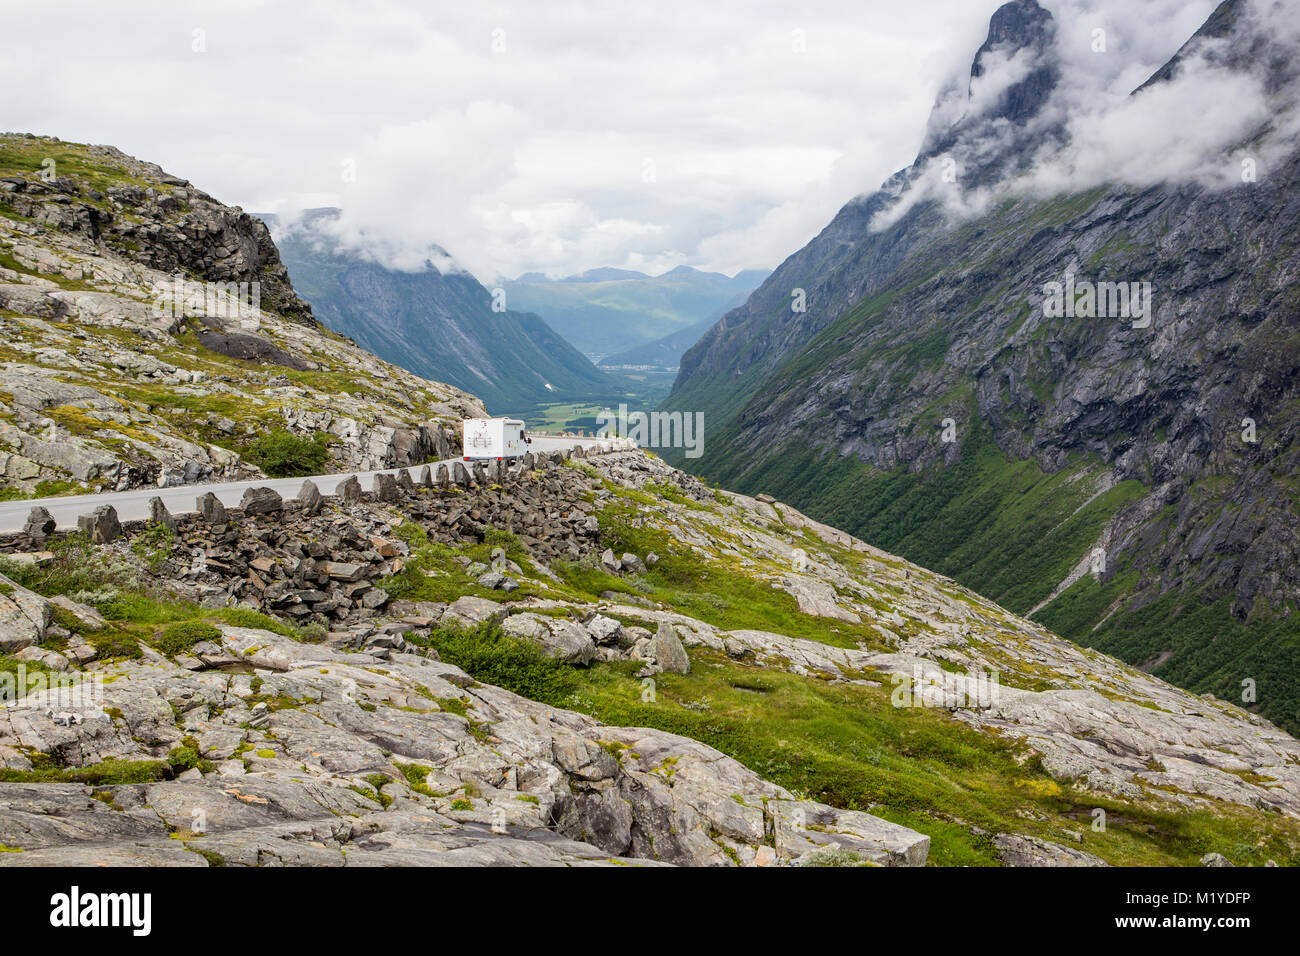 A motorhome, RV, is driving at the road Trollstigen in Norway. - Stock Image